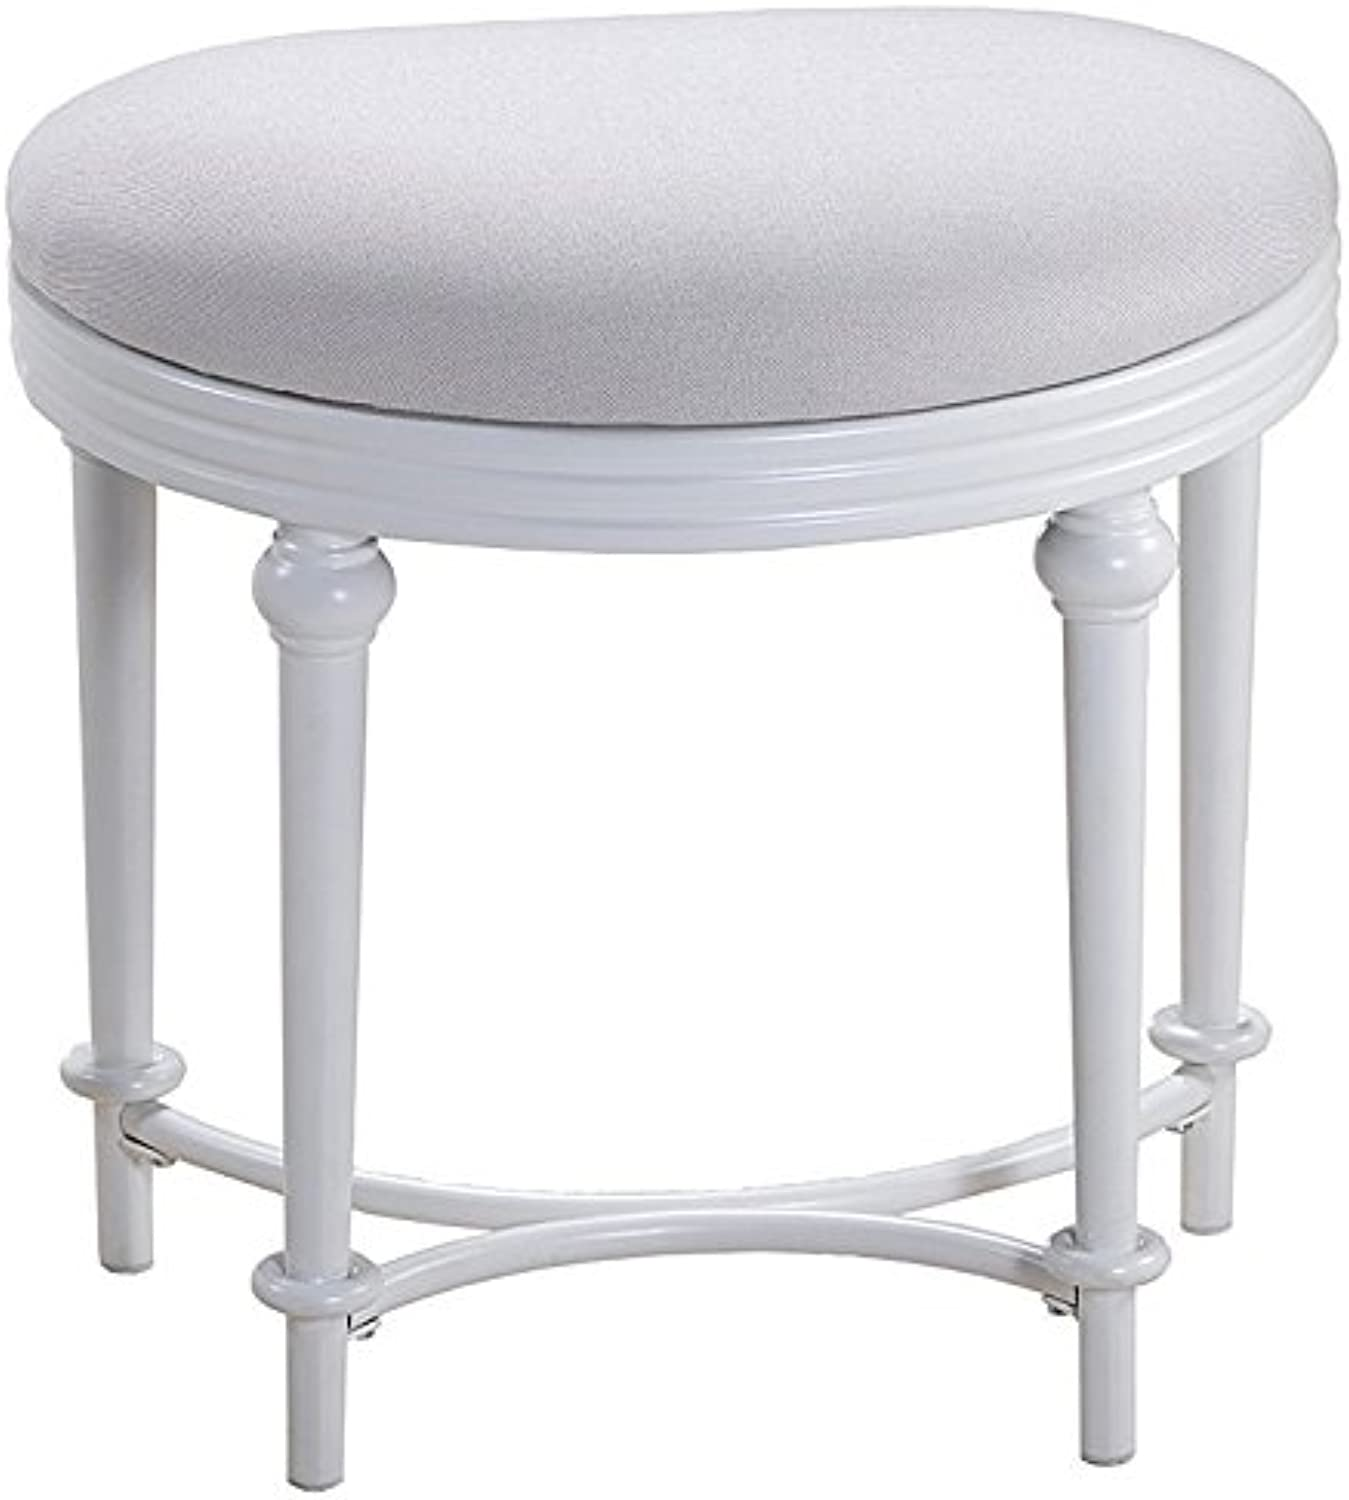 Hillsdale Cape May Vanity Stool in Matte White